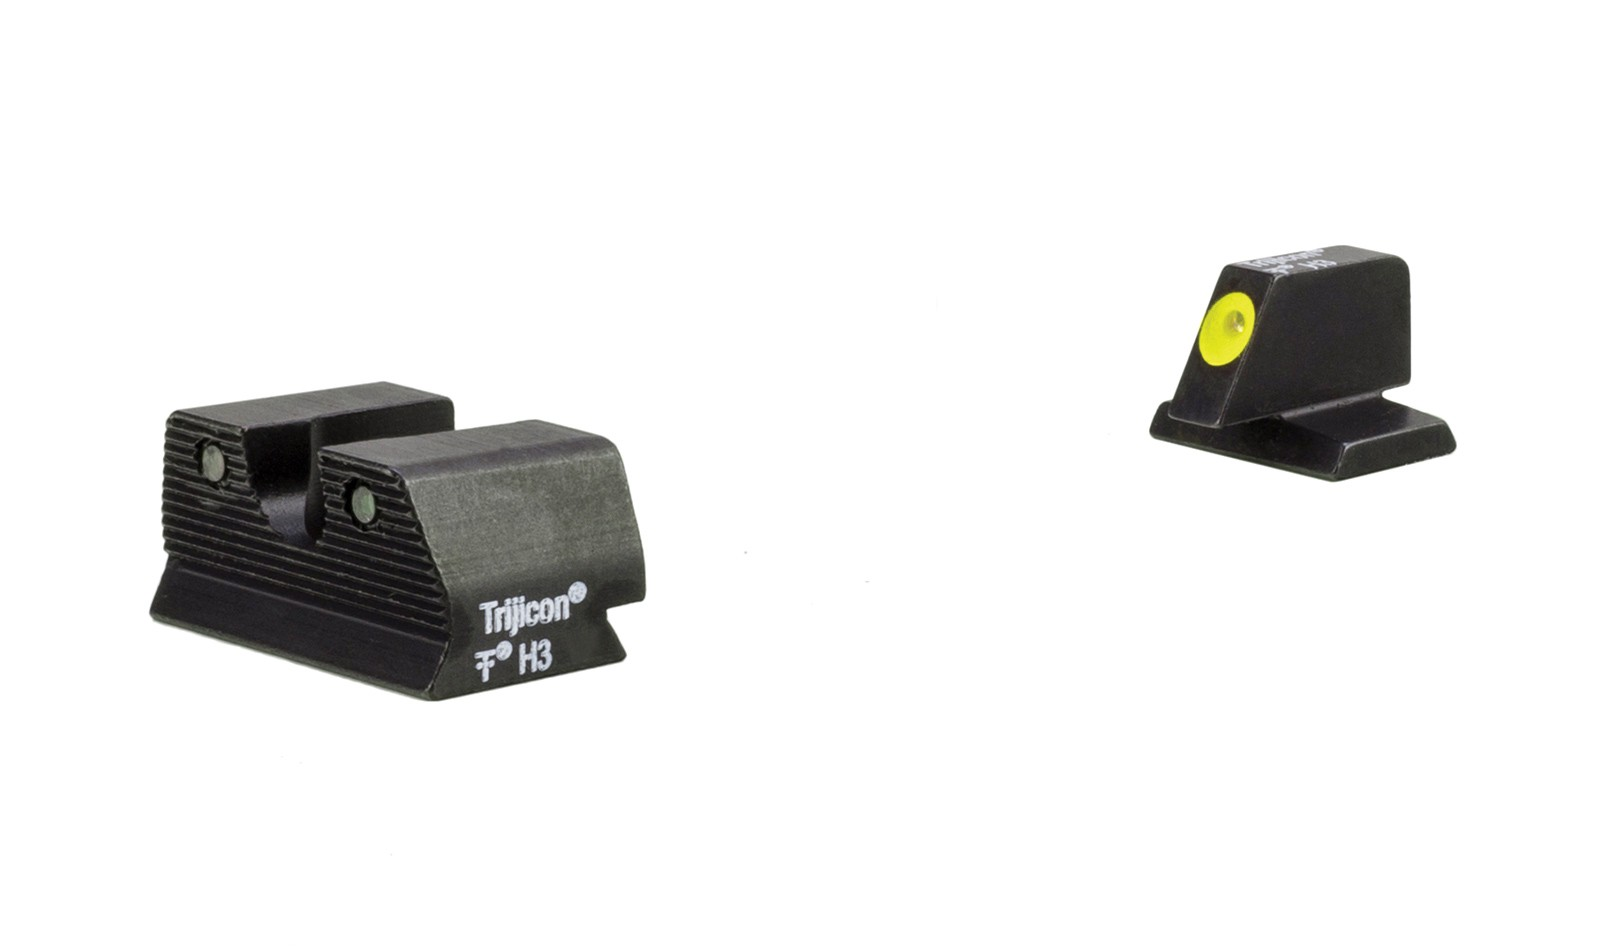 Trijicon HD XR™ Night Sights - FNX-45, FNP-45